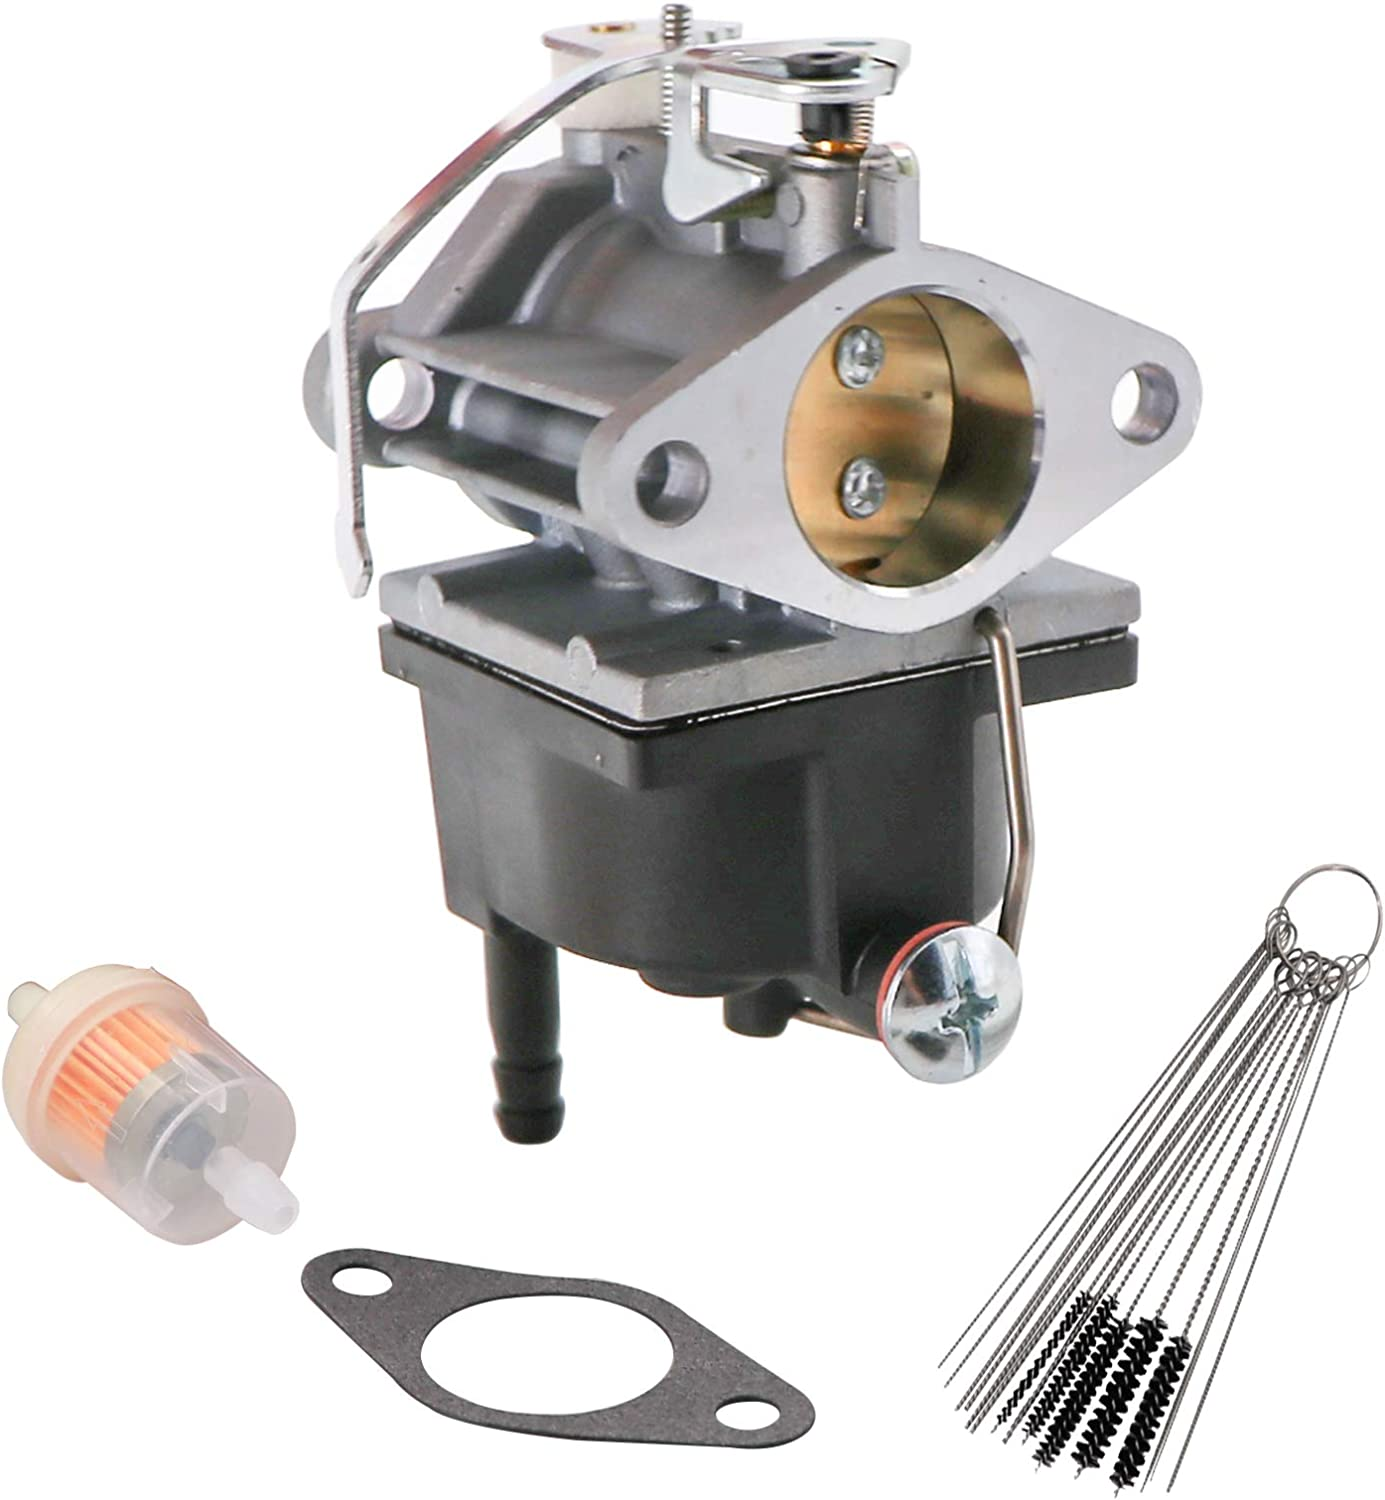 KIPA Carburetor for Tecumseh OH318 OHM90 OHM110 Engines Replace # 640353 640285 640289 640328 640329 with Gasket & Carbon Dirt Jet Cleaner Tool kit Durable